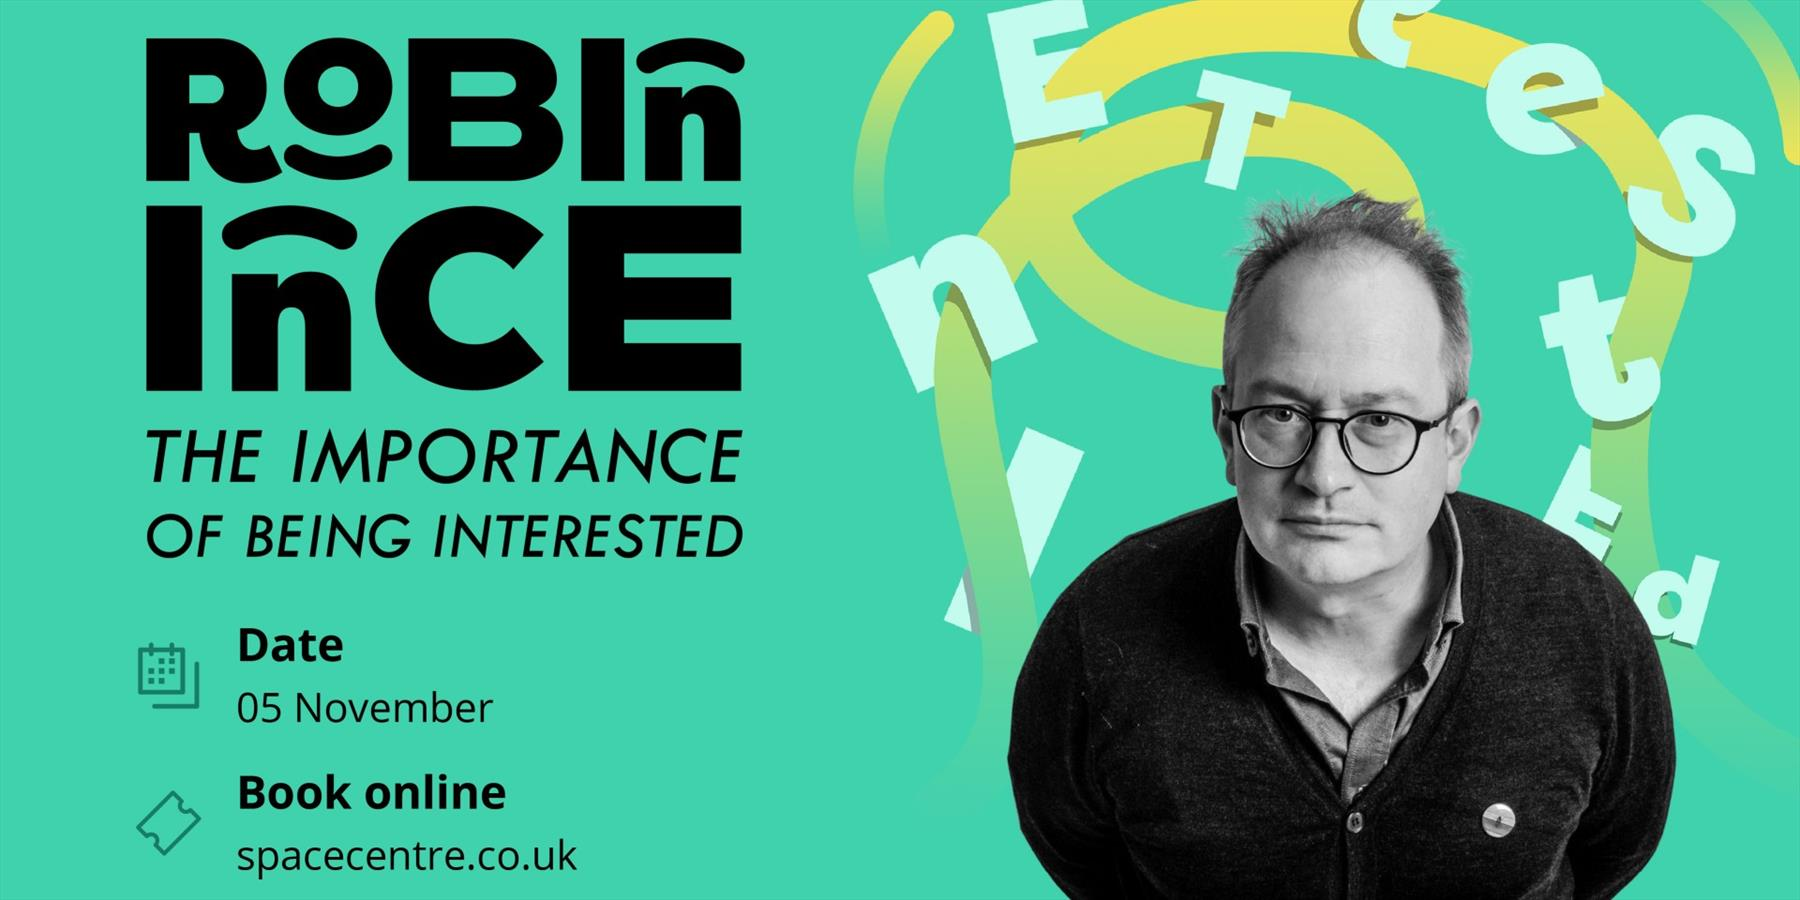 Robin Ince The Importance of being interested